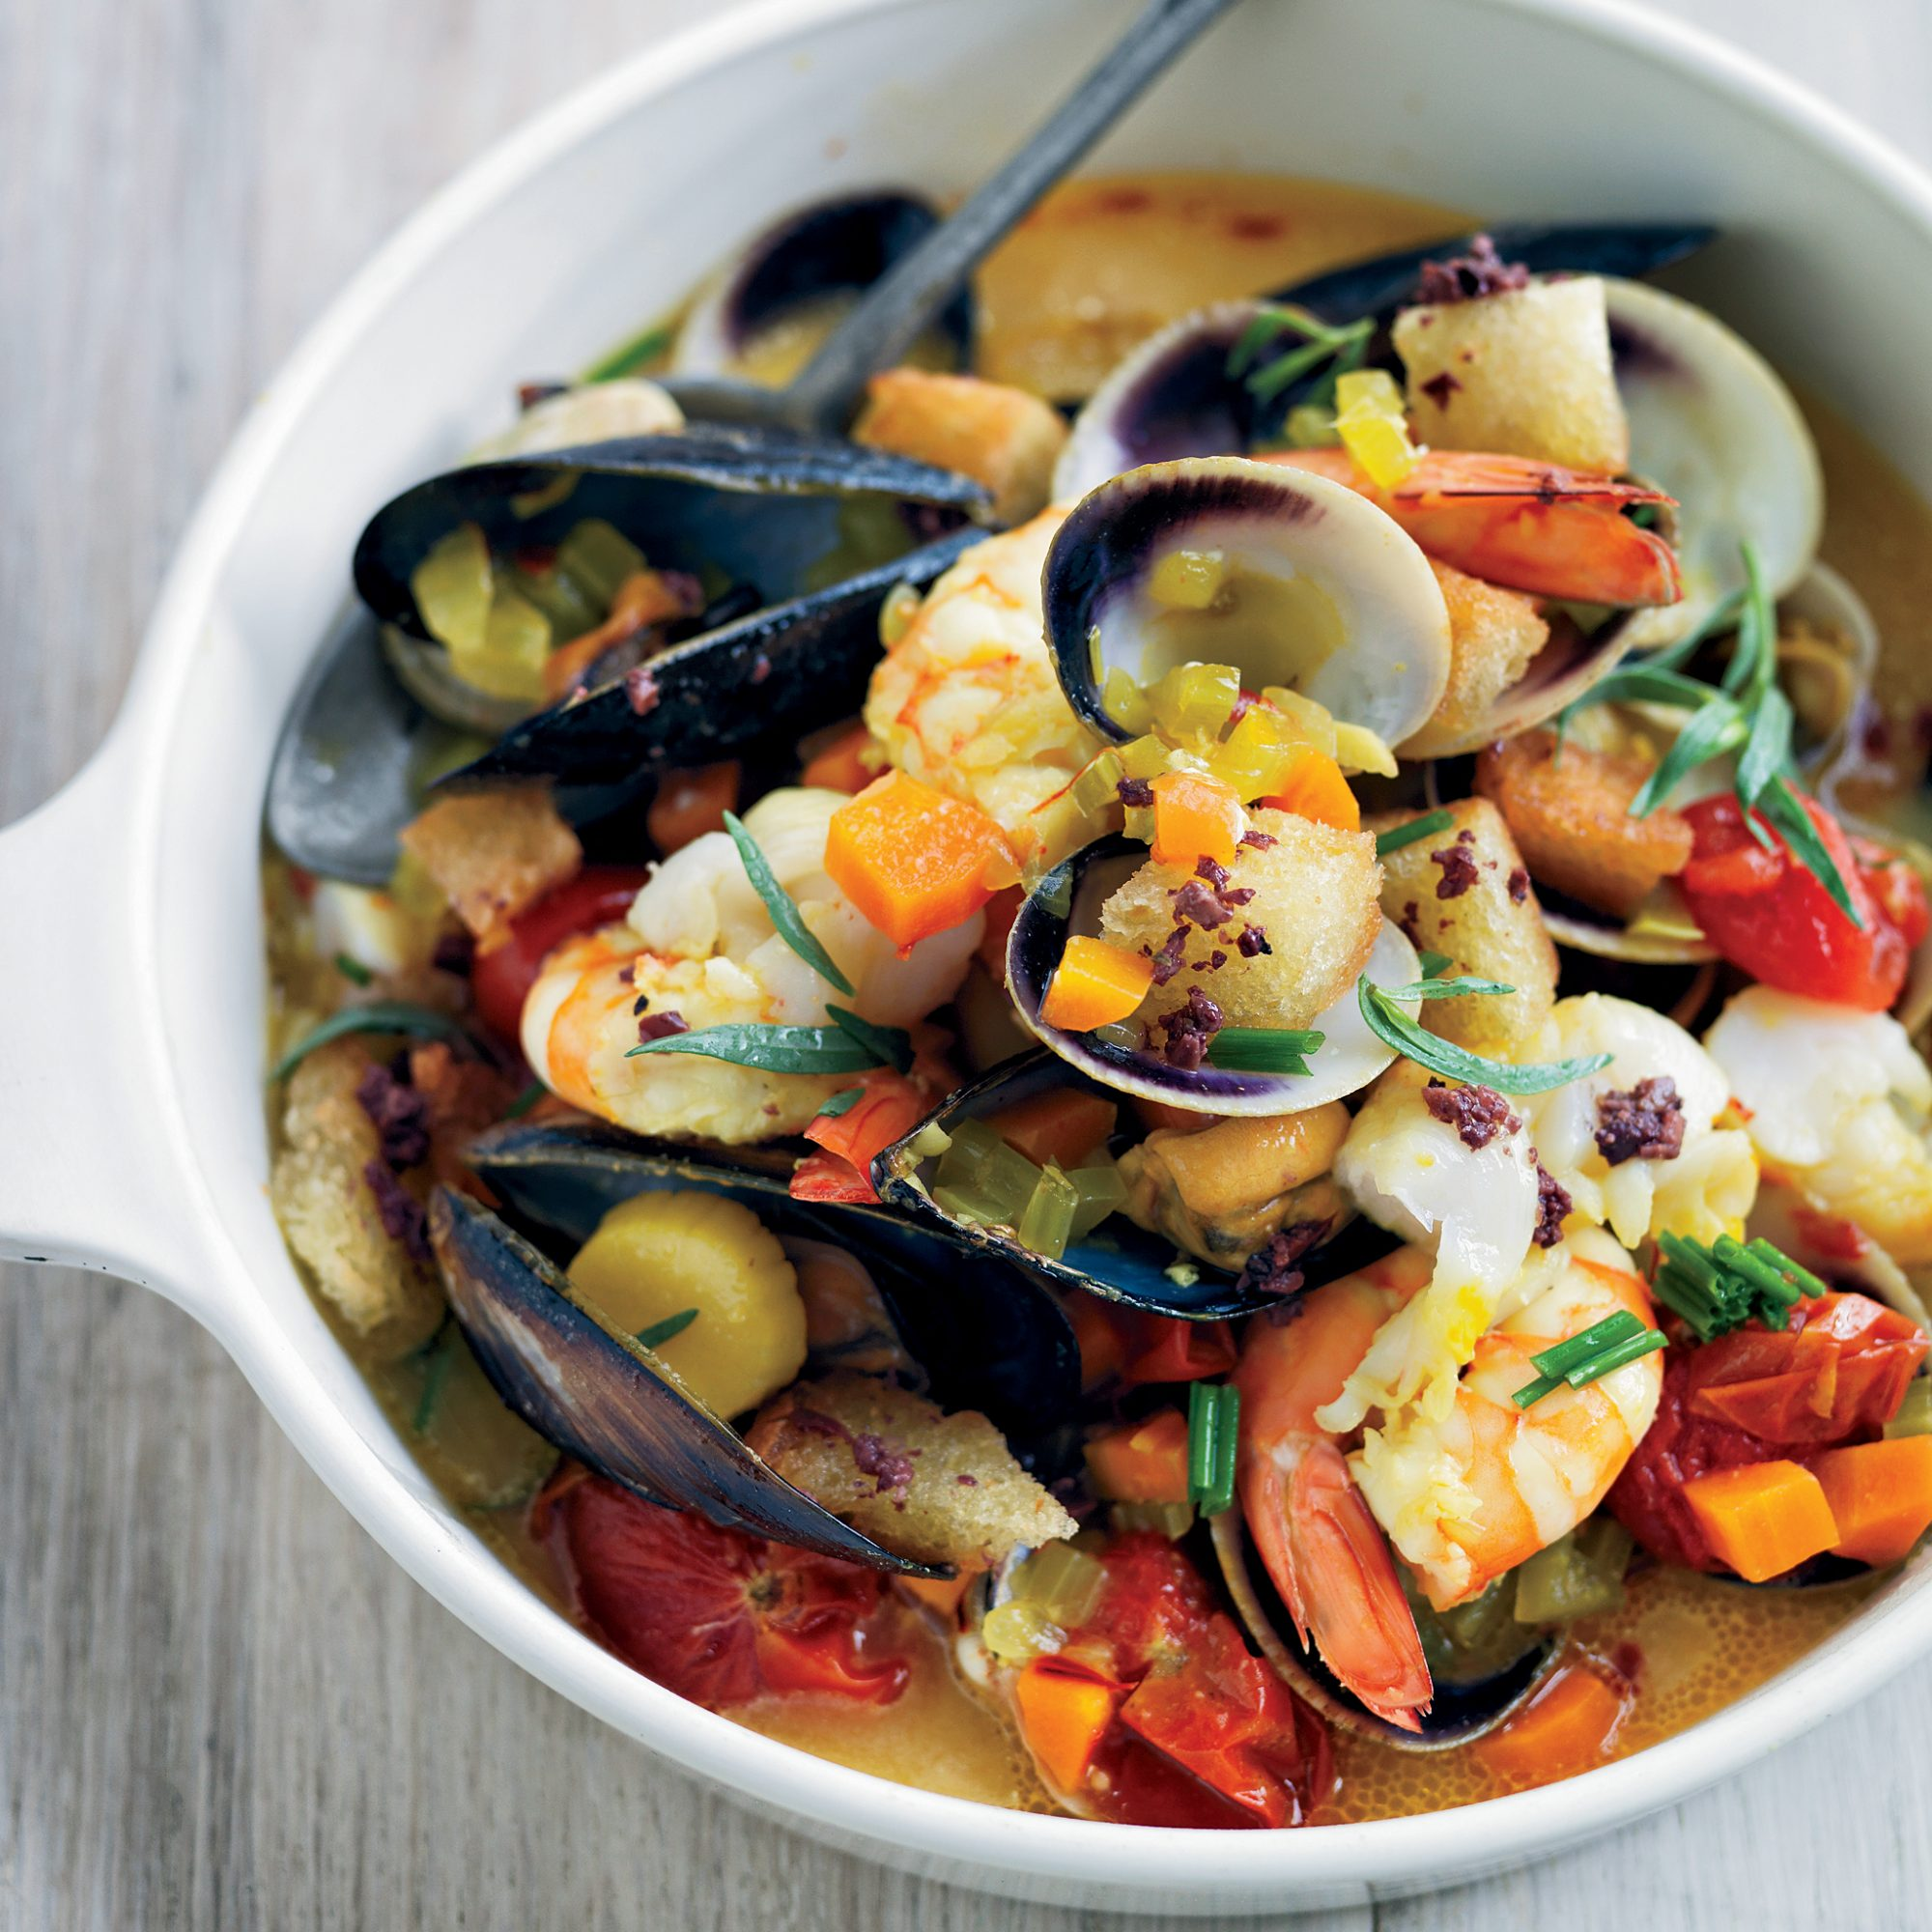 Saffron Shellfish Stew with Black Olive Croutons